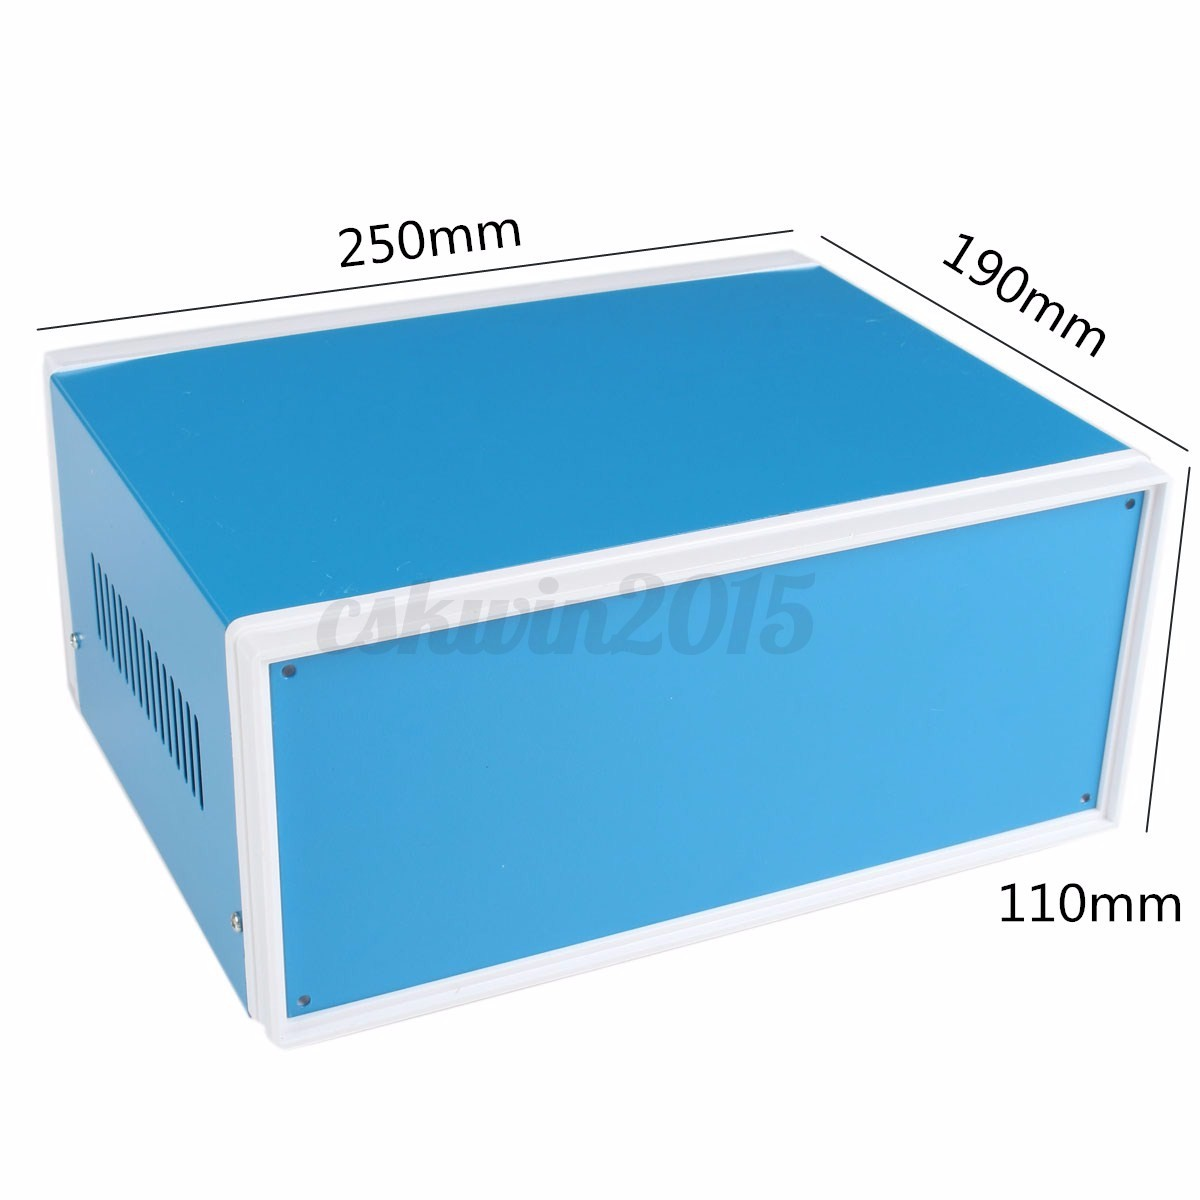 UK Metal Electronic Enclosures DIY Project Box Junction Case 250mmx190mmx110mm